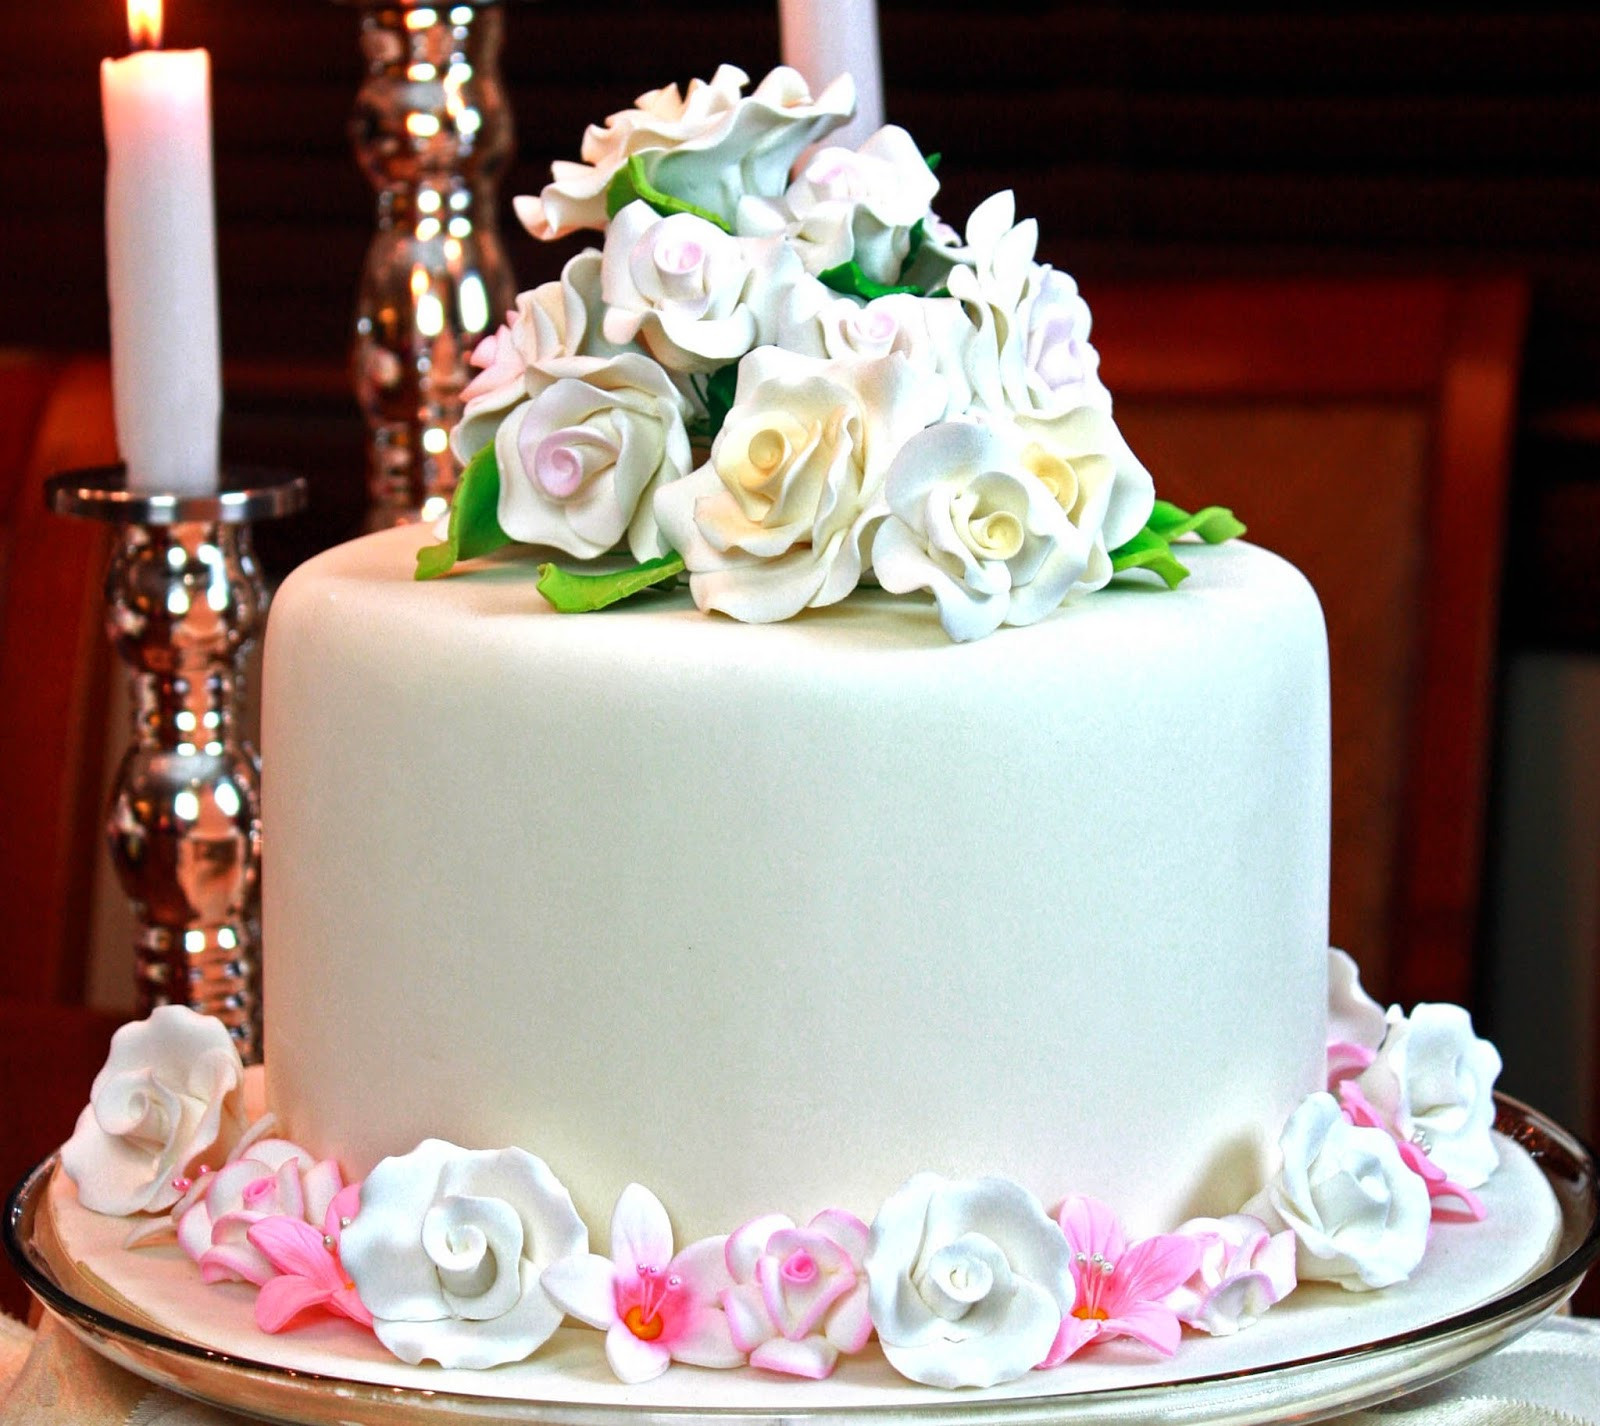 Best ideas about Cake Birthday . Save or Pin Happy Birthday Cake Now.